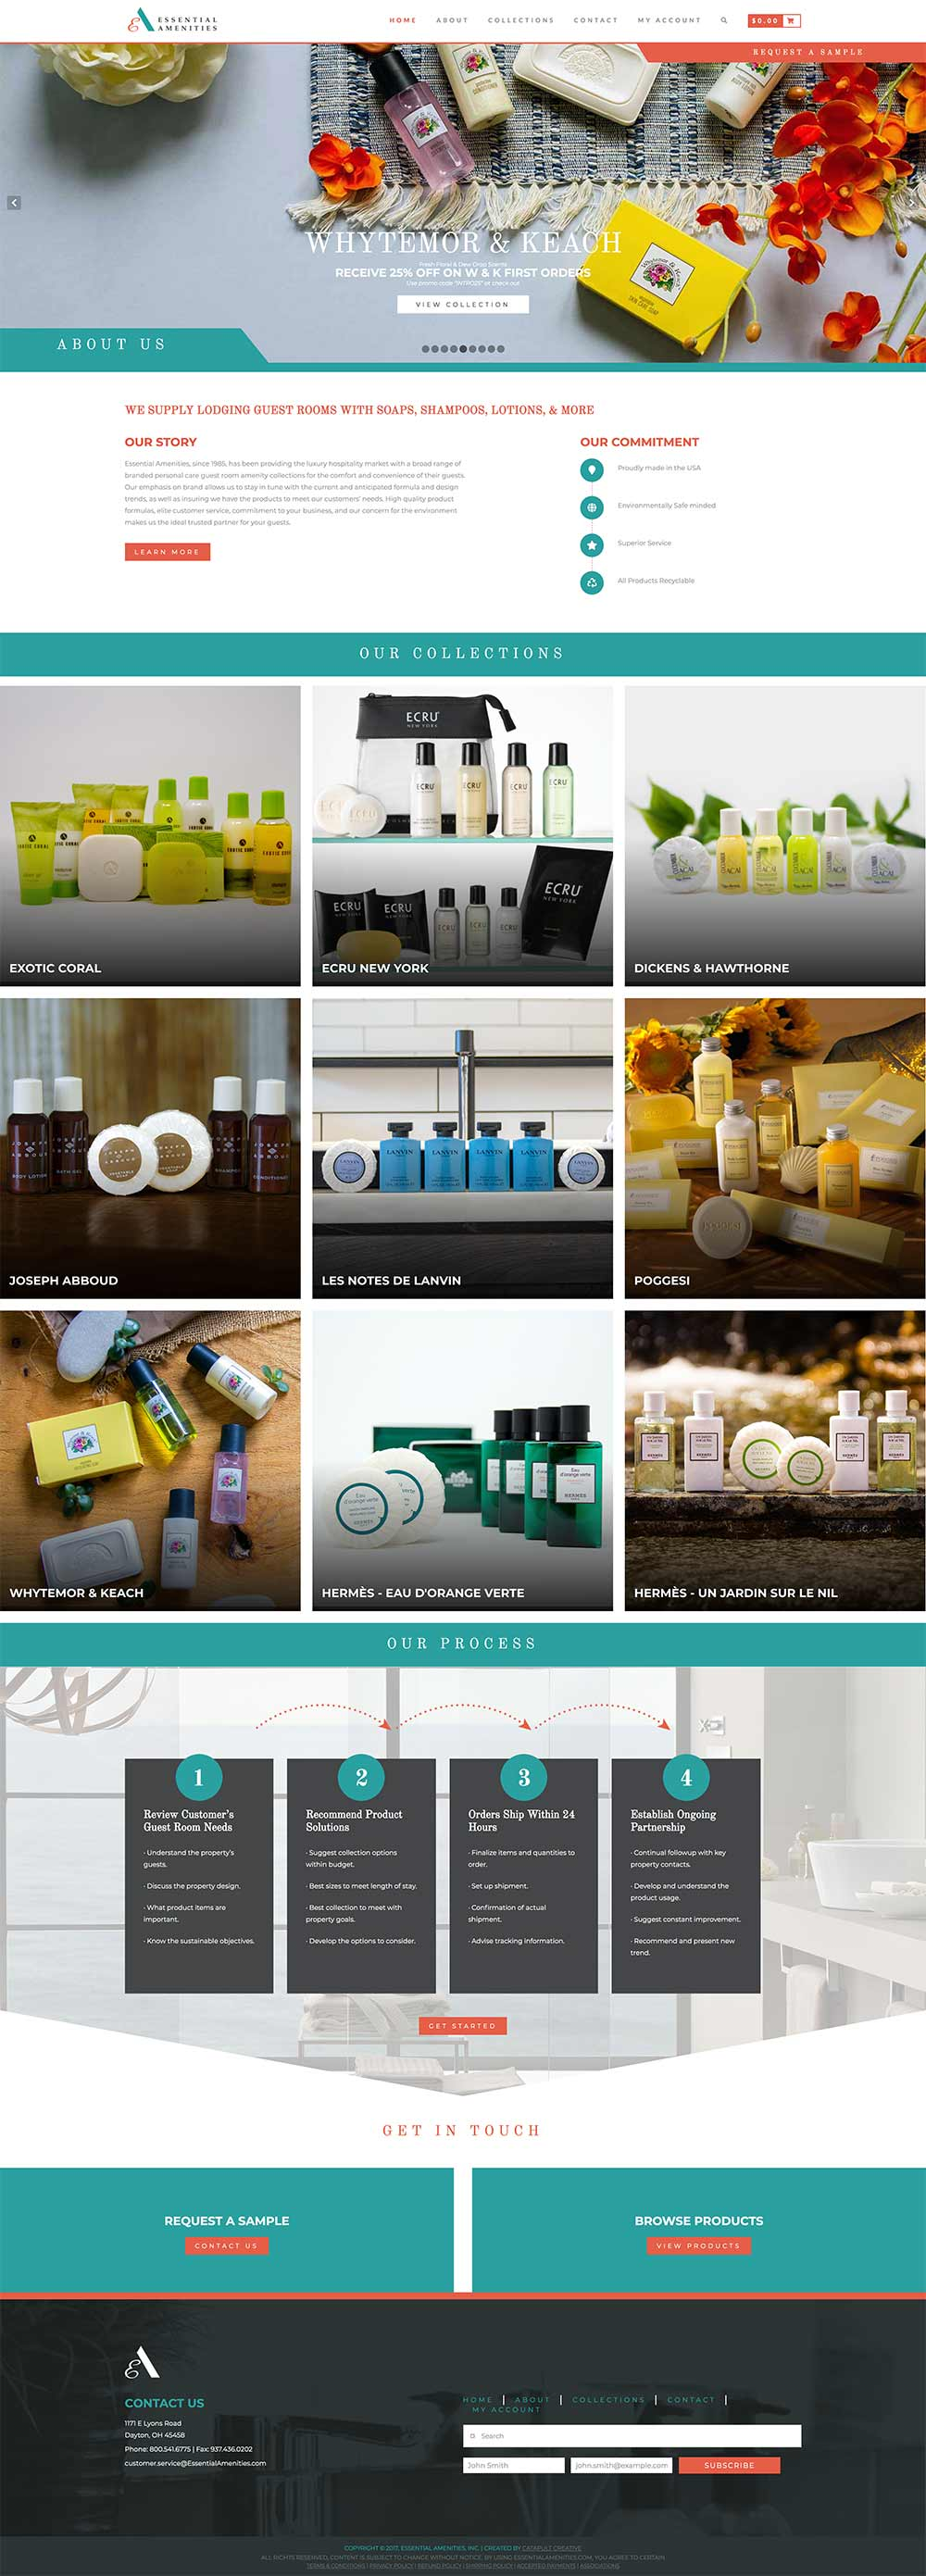 essential amenities website